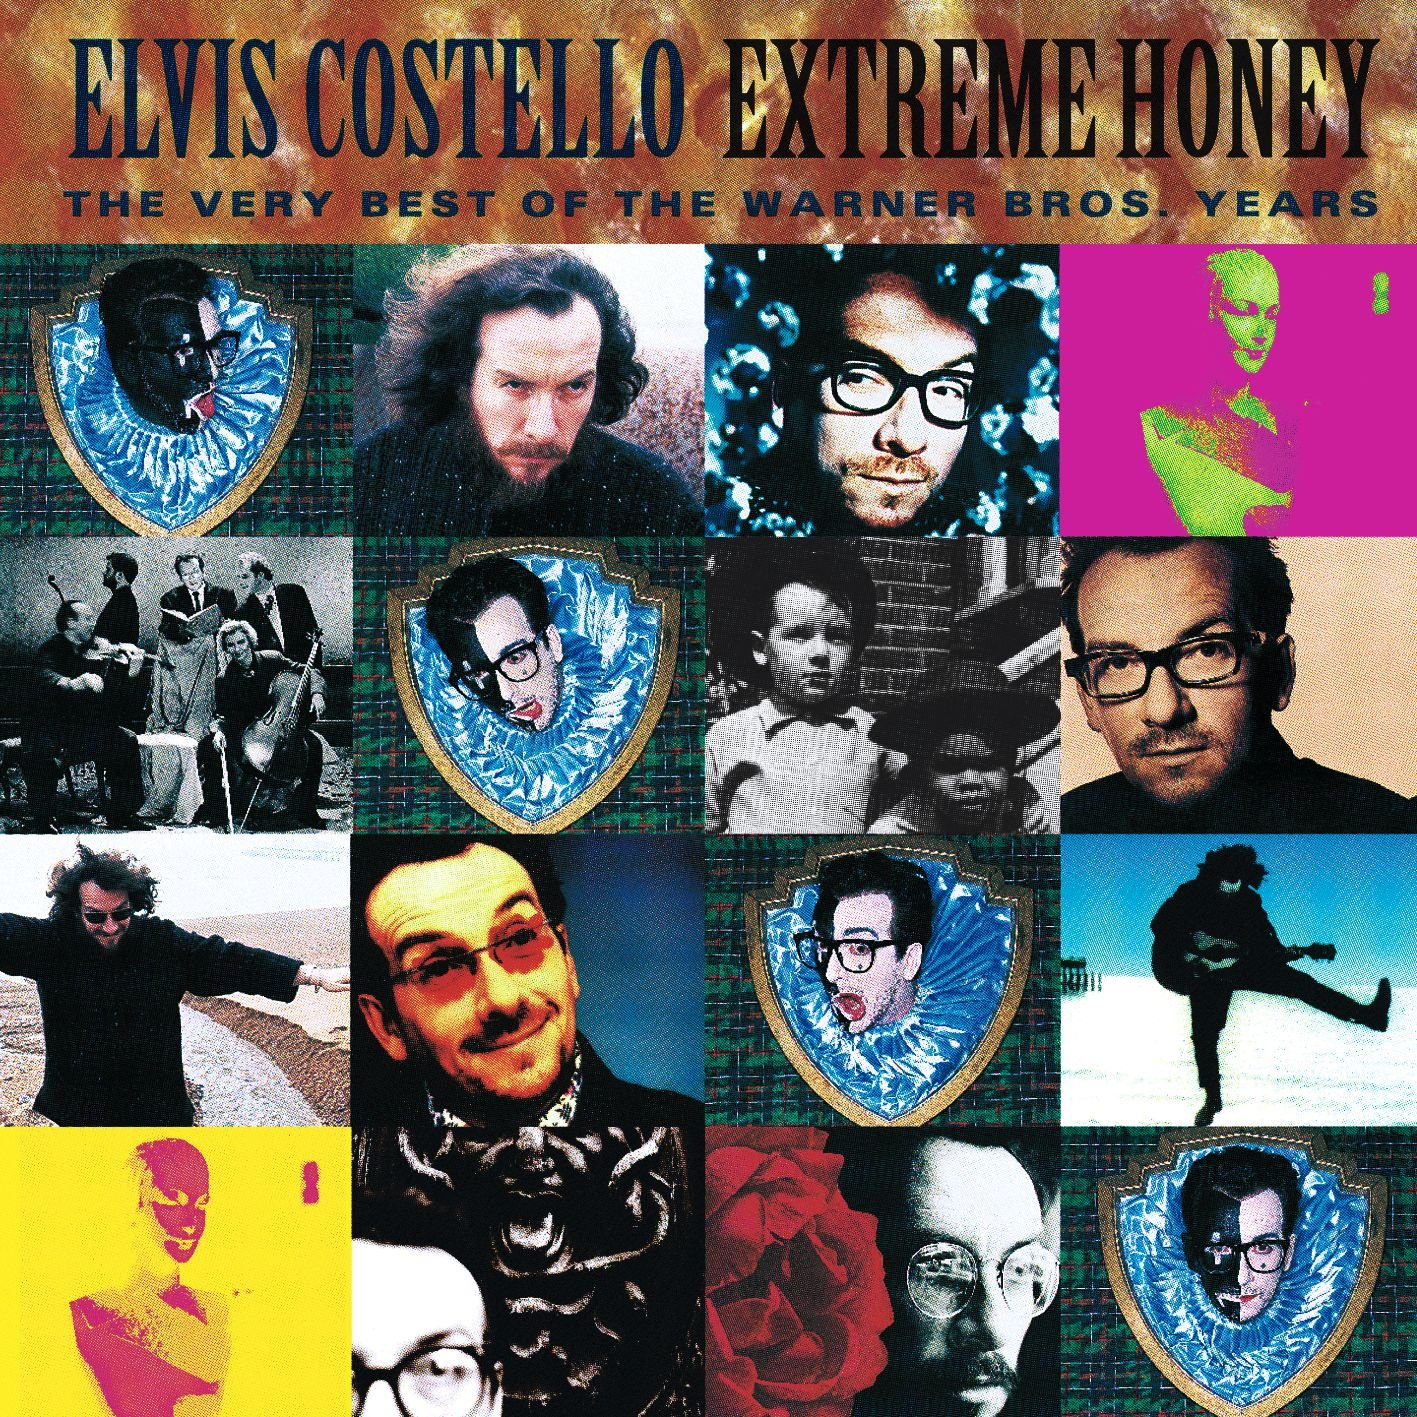 elvis costello extreme honey the best of the warner bros years elvis costello extreme honey the best of the warner bros years amazon com music